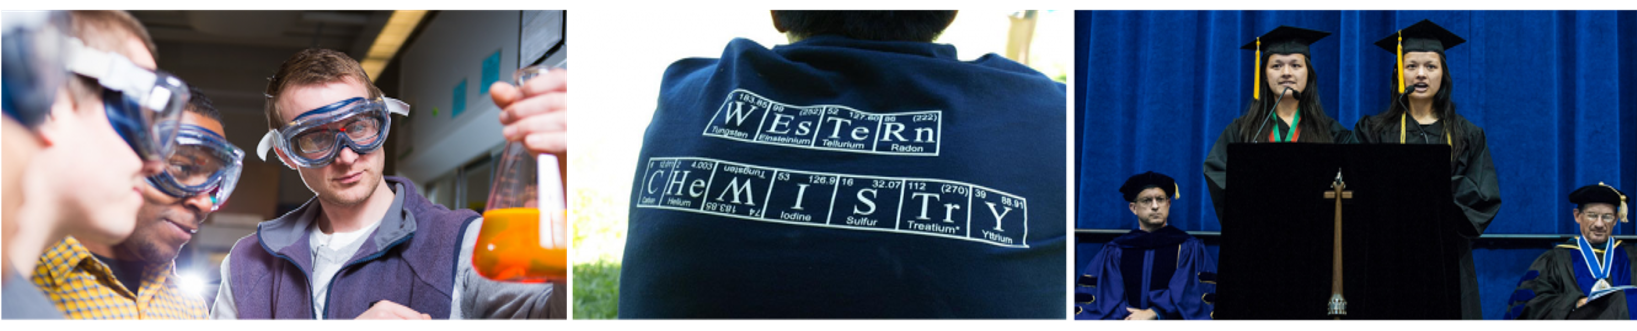 Photo compilation 1: Dr. Gilbertson with students in lab holding glassware 2: students back wearing western chemistry shirt 3: students speaking at graduation